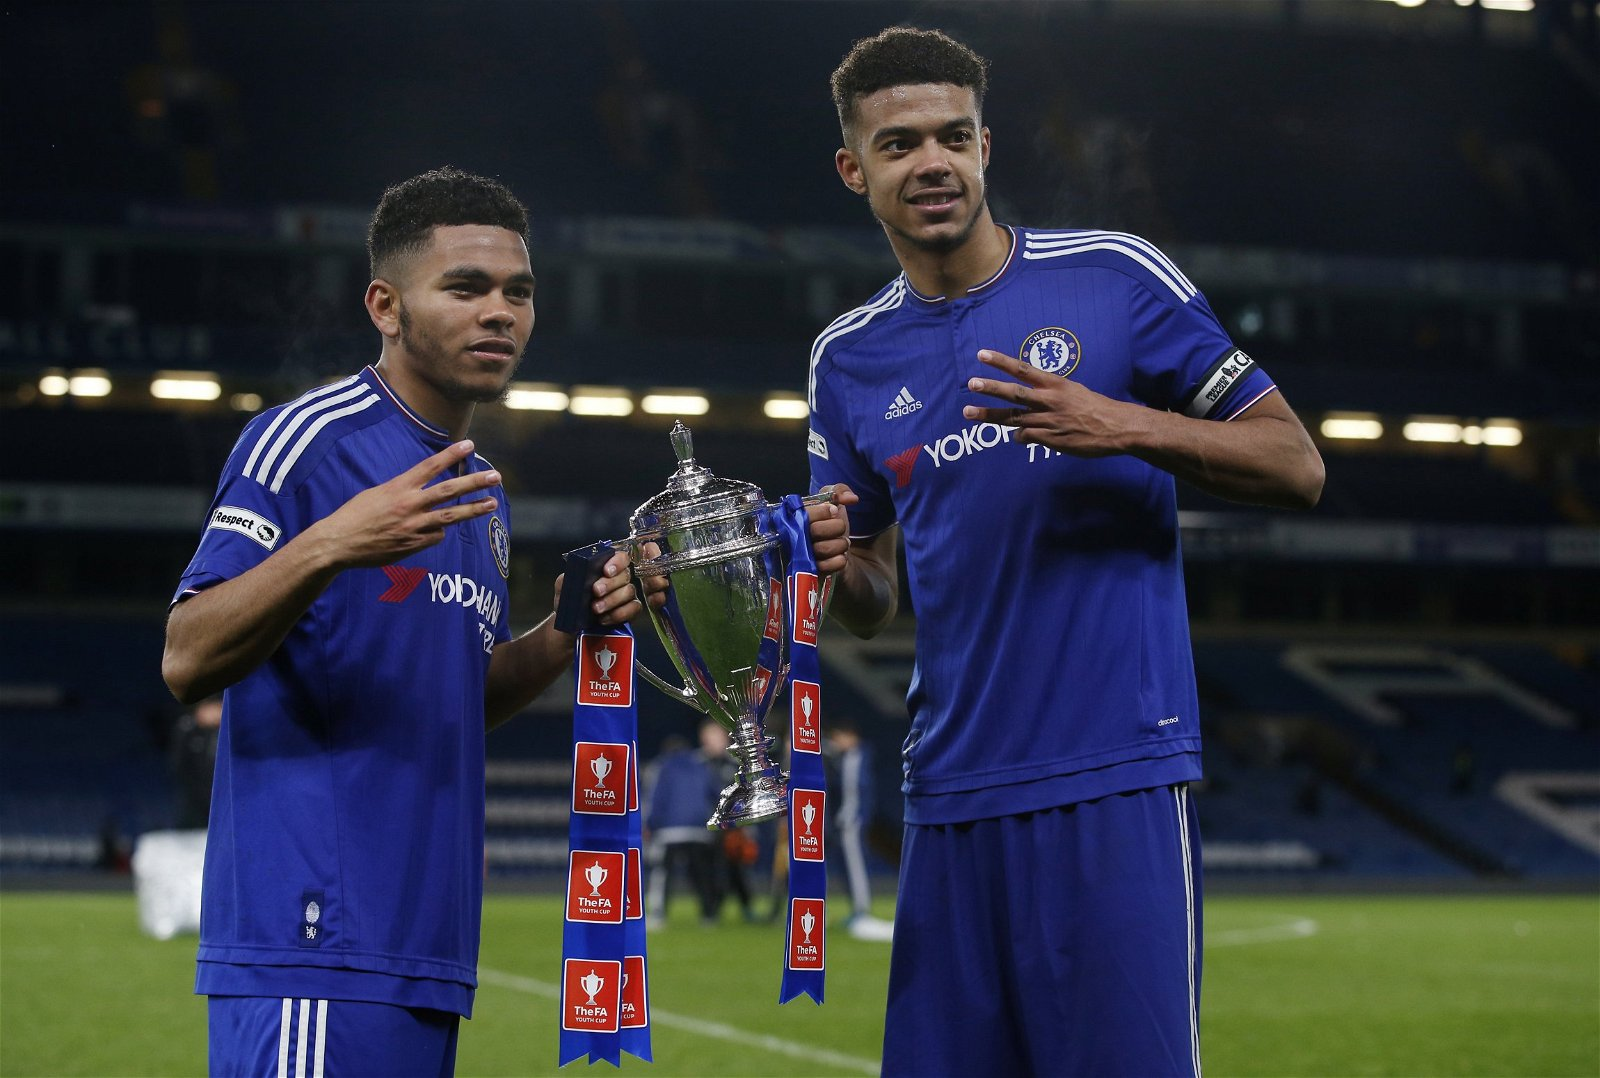 Jay Dasilva lifts the FA Youth Cup